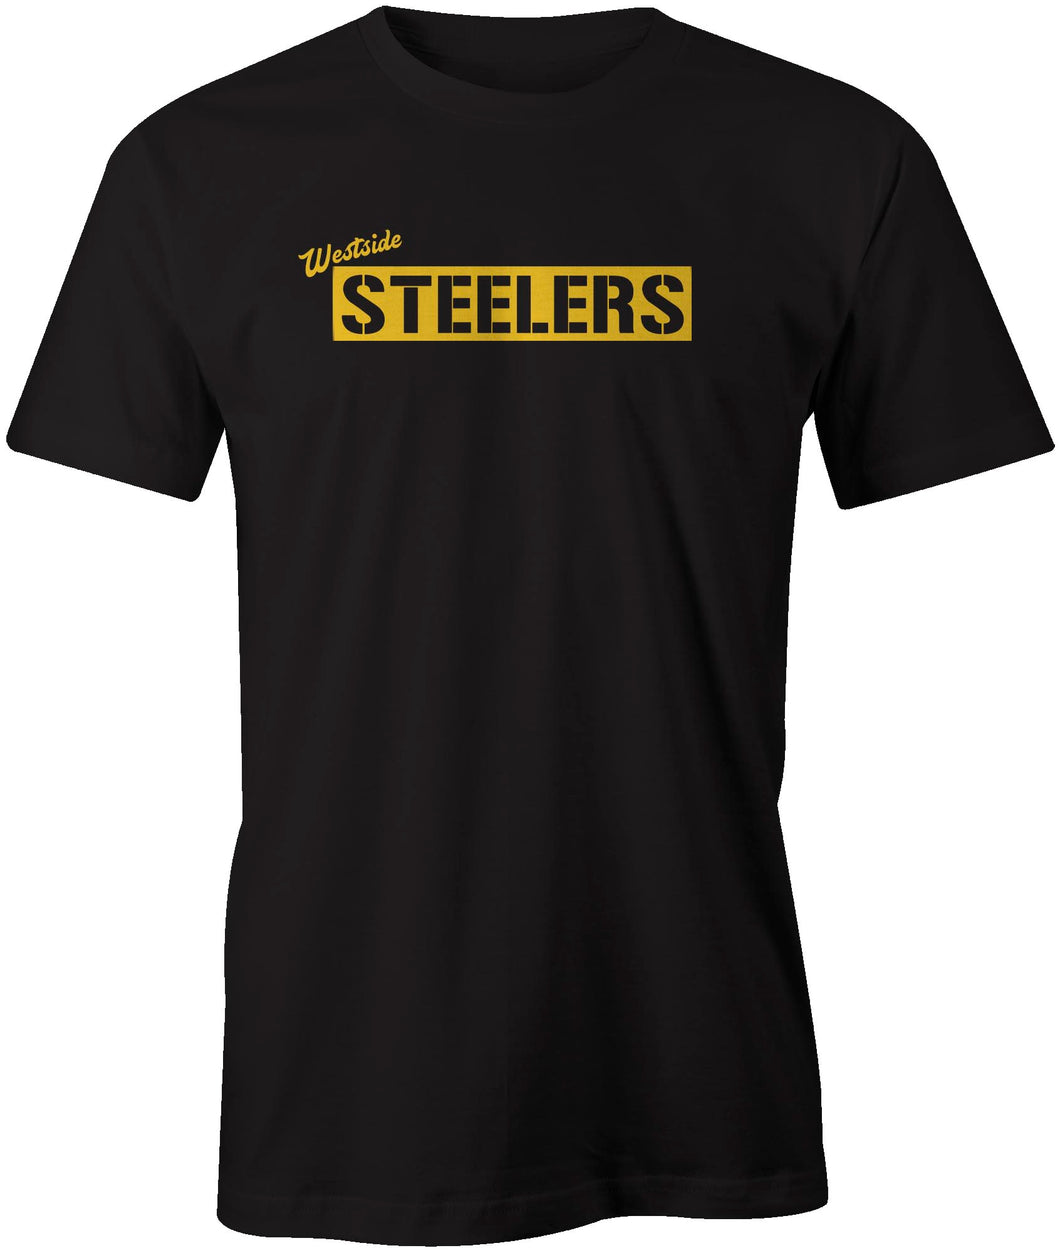 Westside Steelers Reverse Box Style T-Shirt